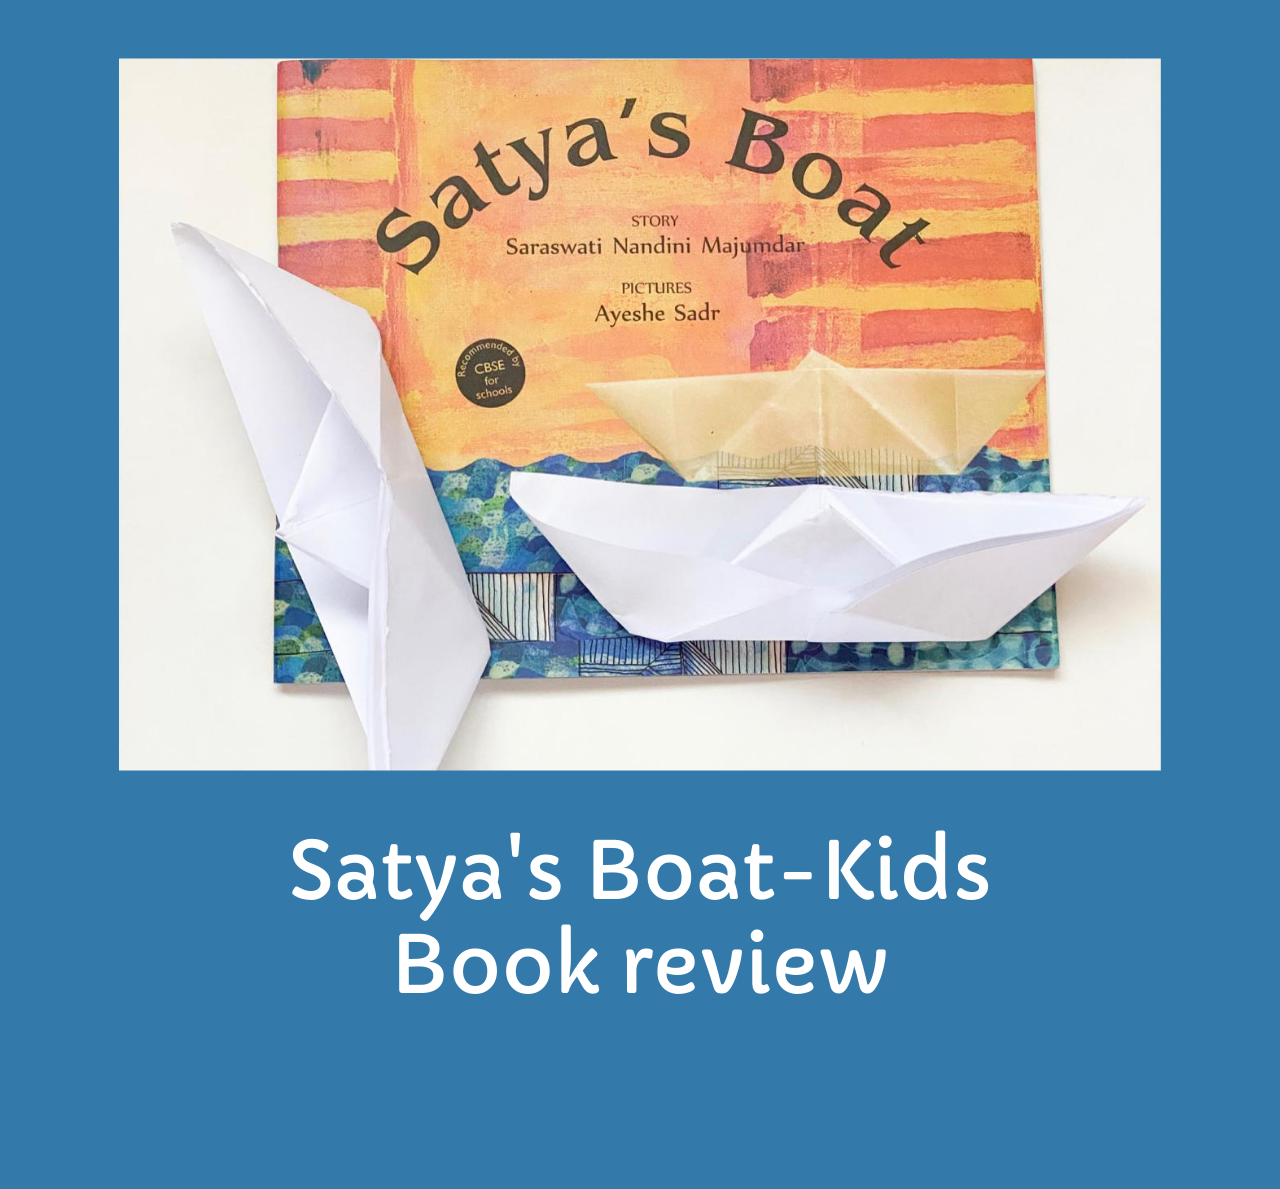 Kids Book review with props